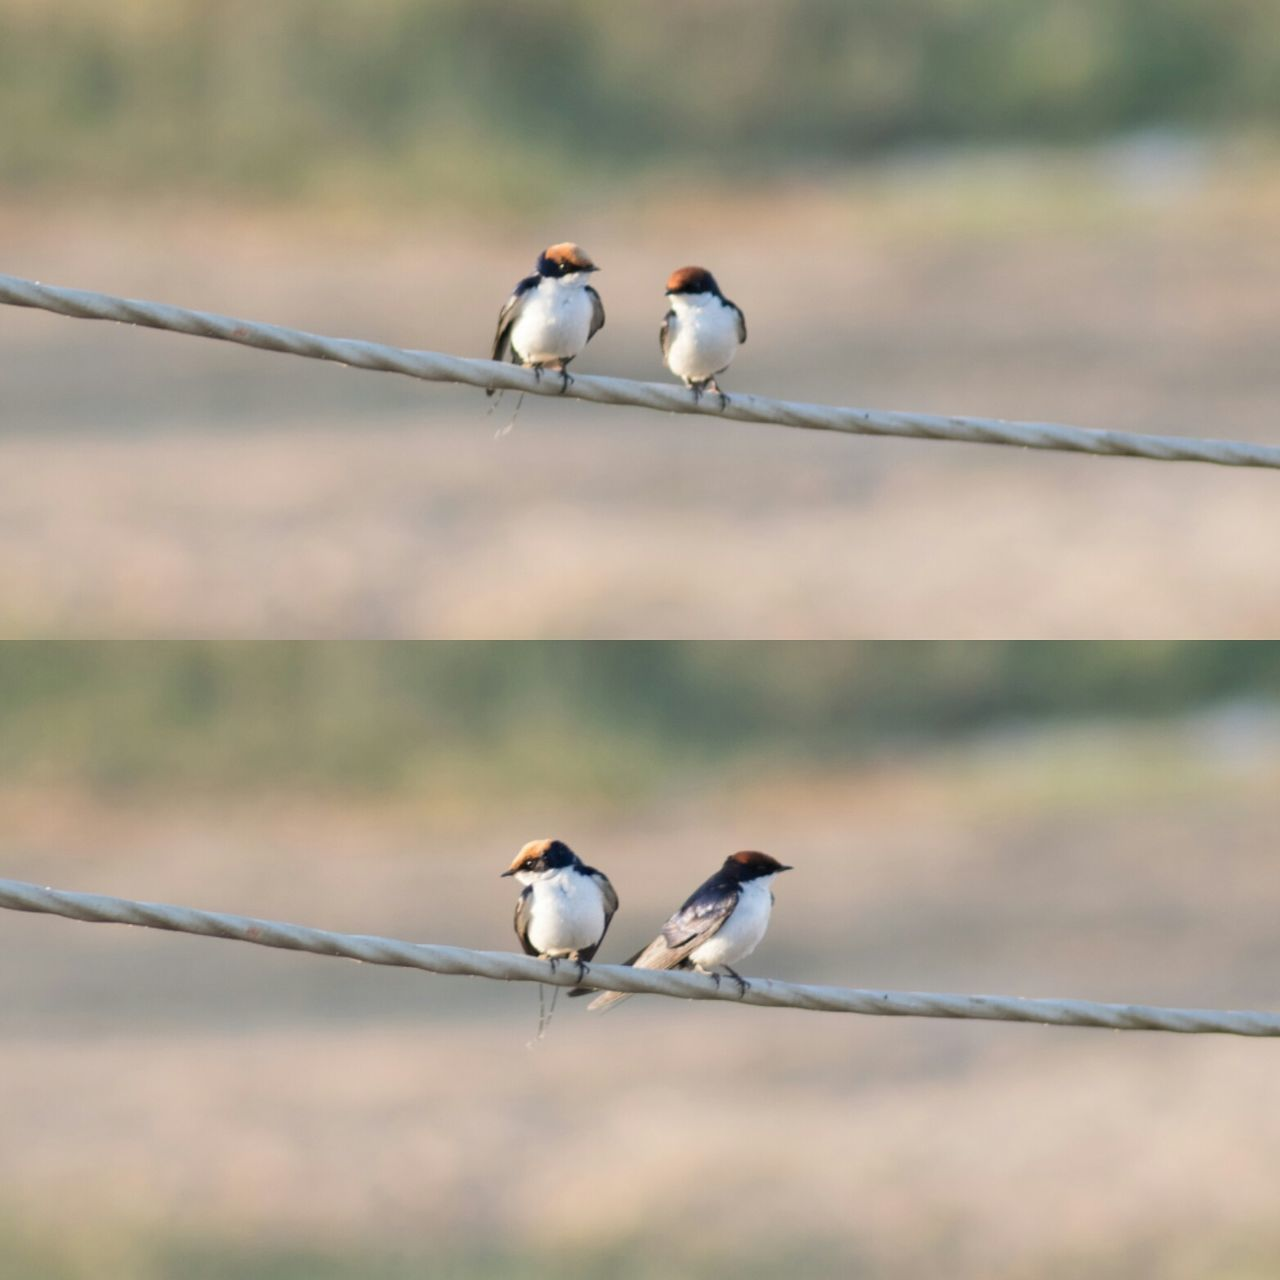 Couple of swallows had their argument😂 Bird Animal Wildlife Nature Animal Themes Perching Living Organism Animals In The Wild Swallow Birds Swallow Couple - Relationship Couples Couple Photography Nikonphotography NIKON D5300 NikonAsia Nikonindia EyeEm Eyeemphotography Amateurphotography Amateur Photographer Photography Songbird  Full Length Eating EyeEmNewHere